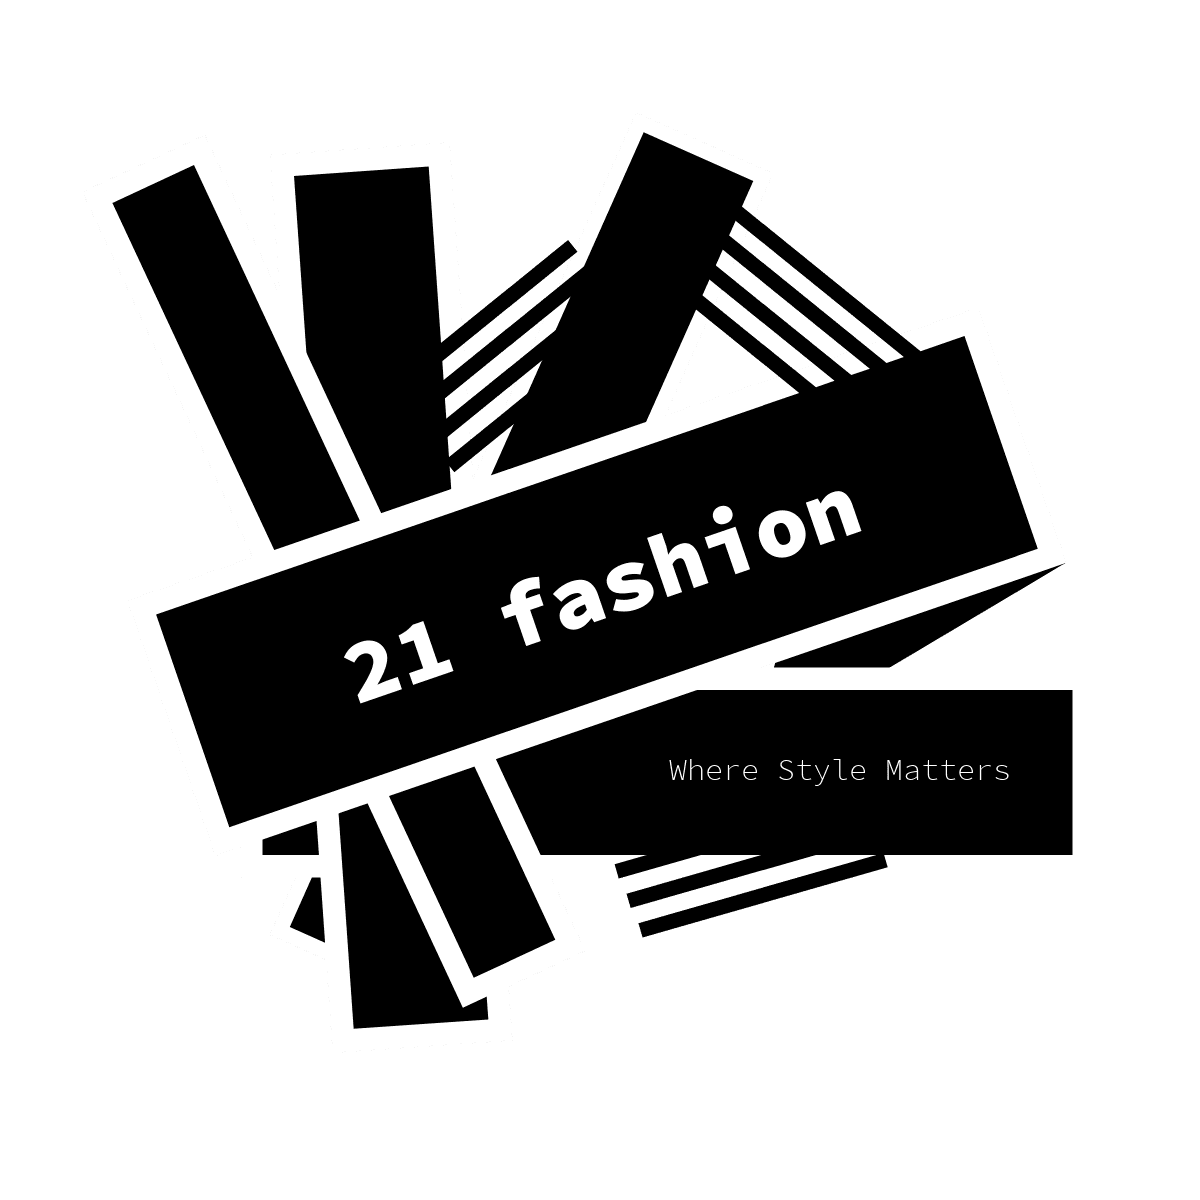 21Fashion is a style of life